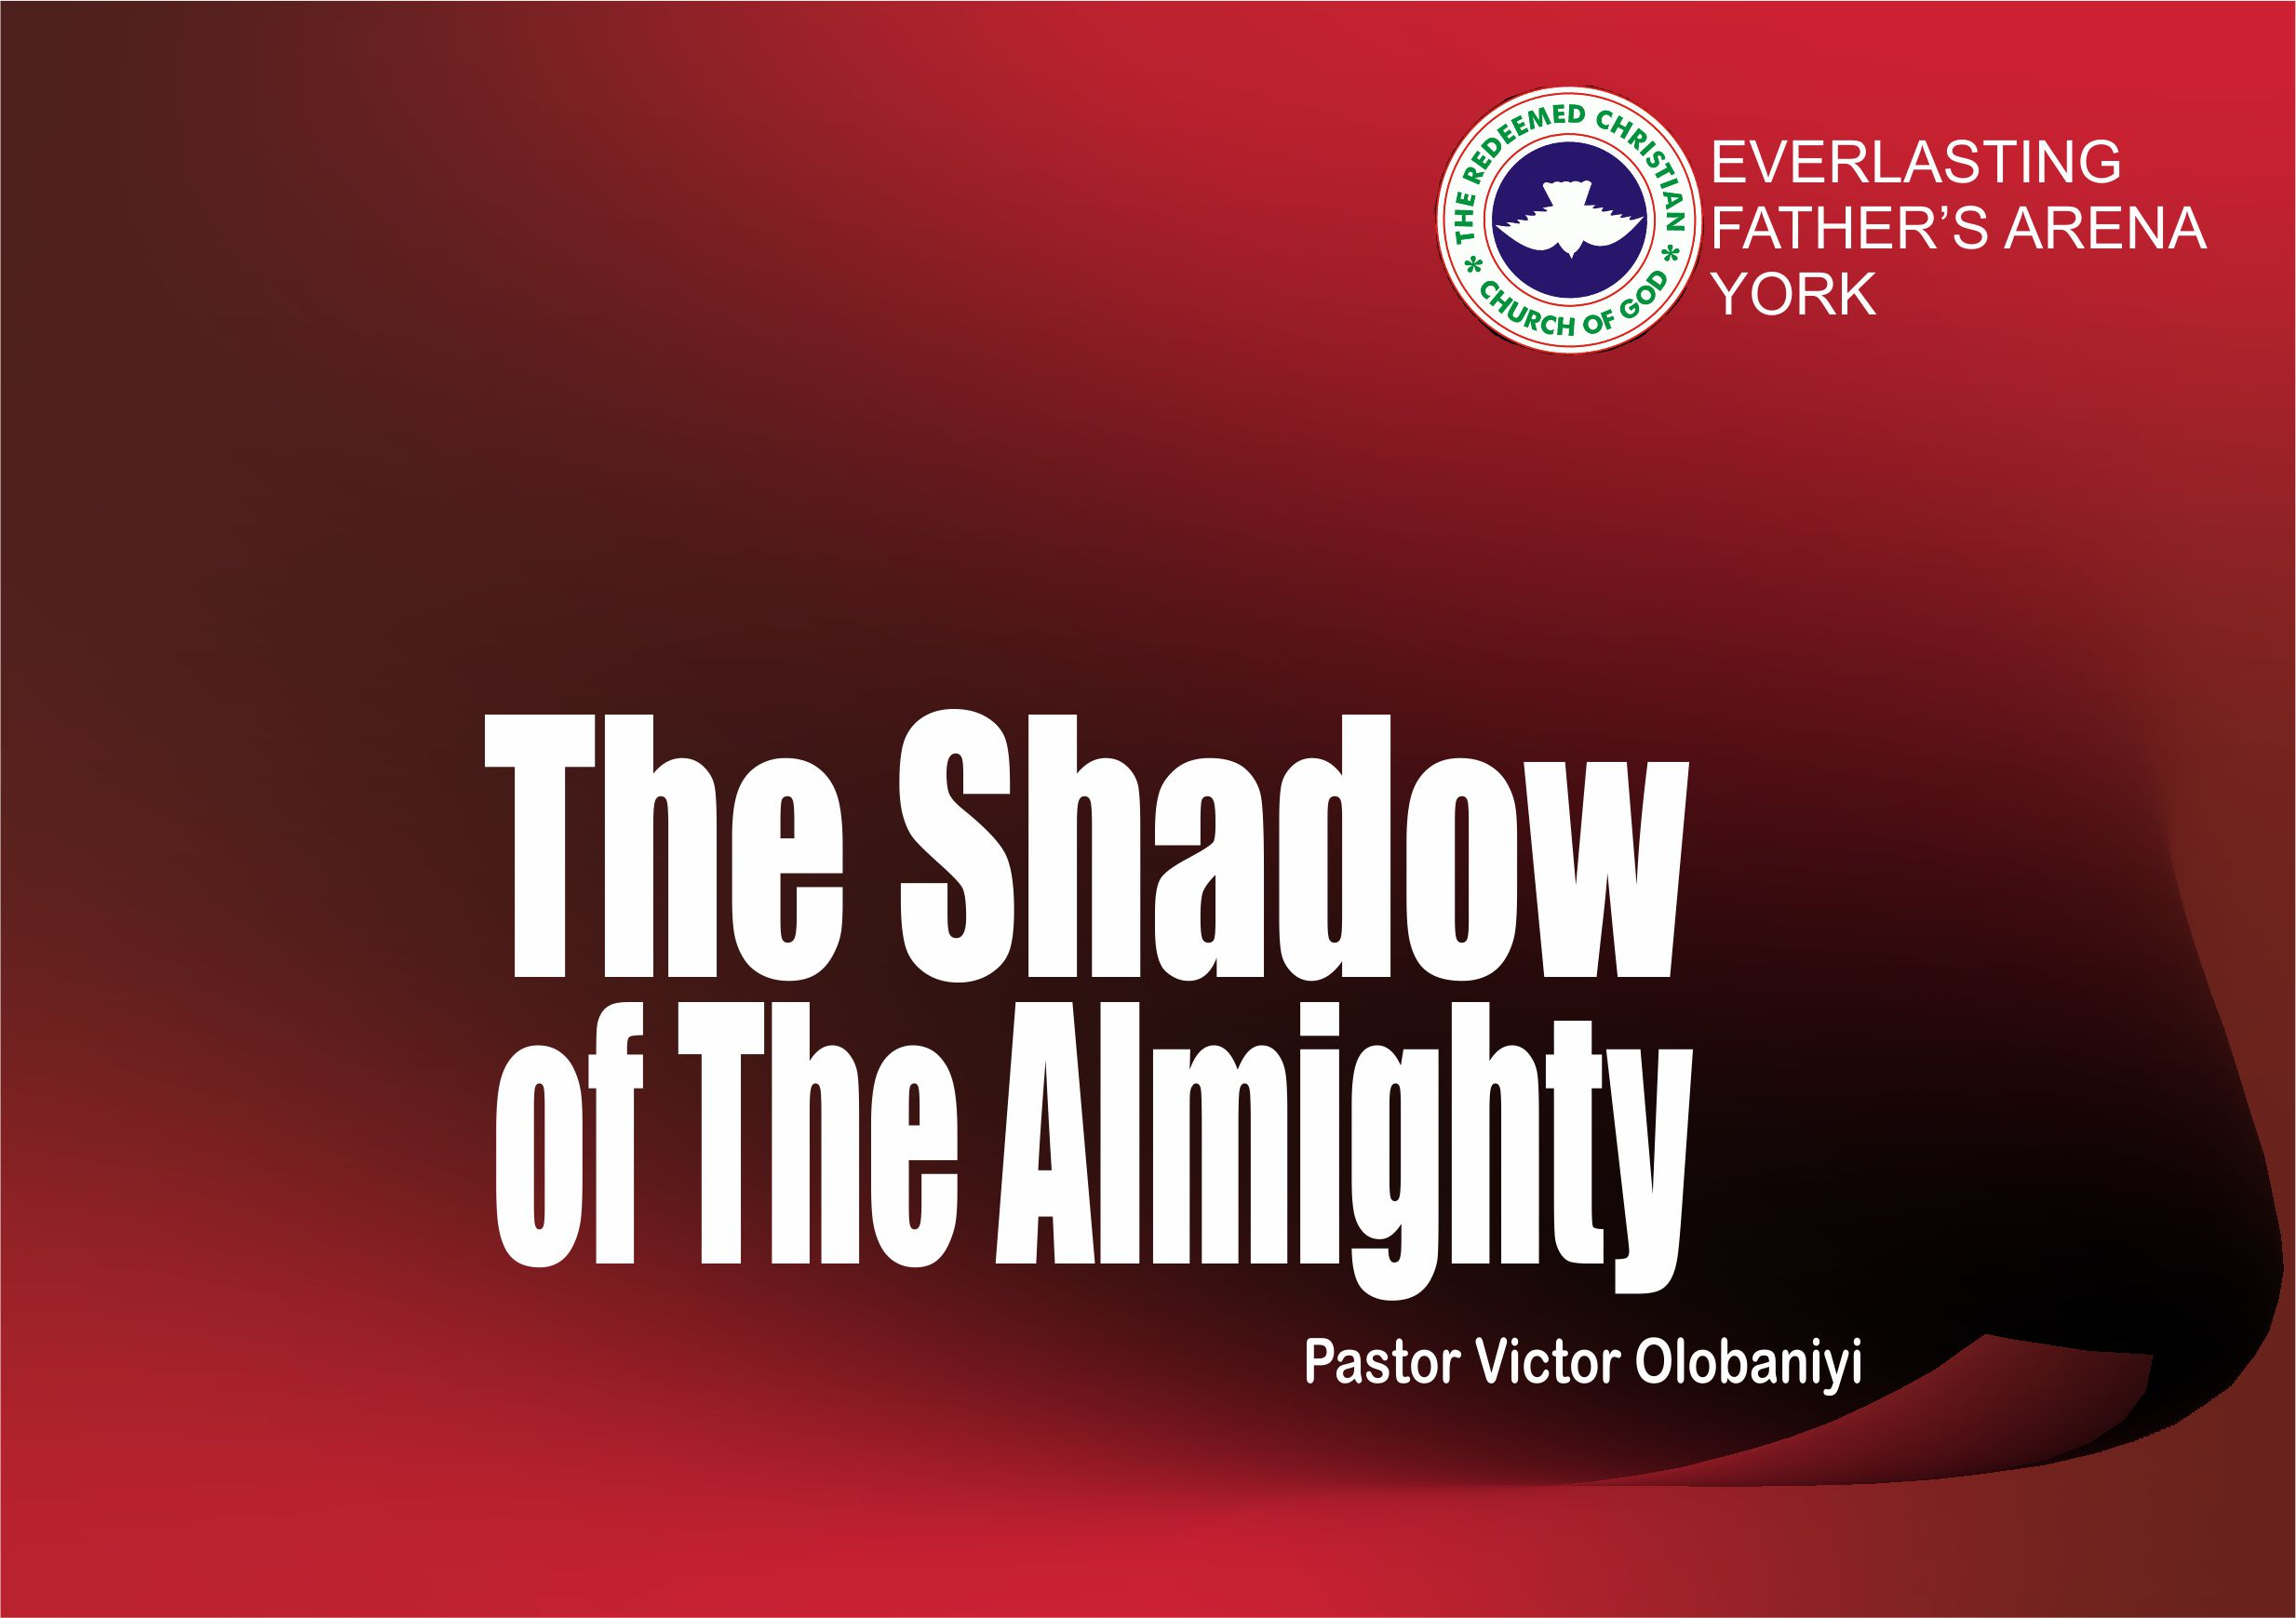 The Shadow of The Almighty, by Pastor Victor Olobaniyi